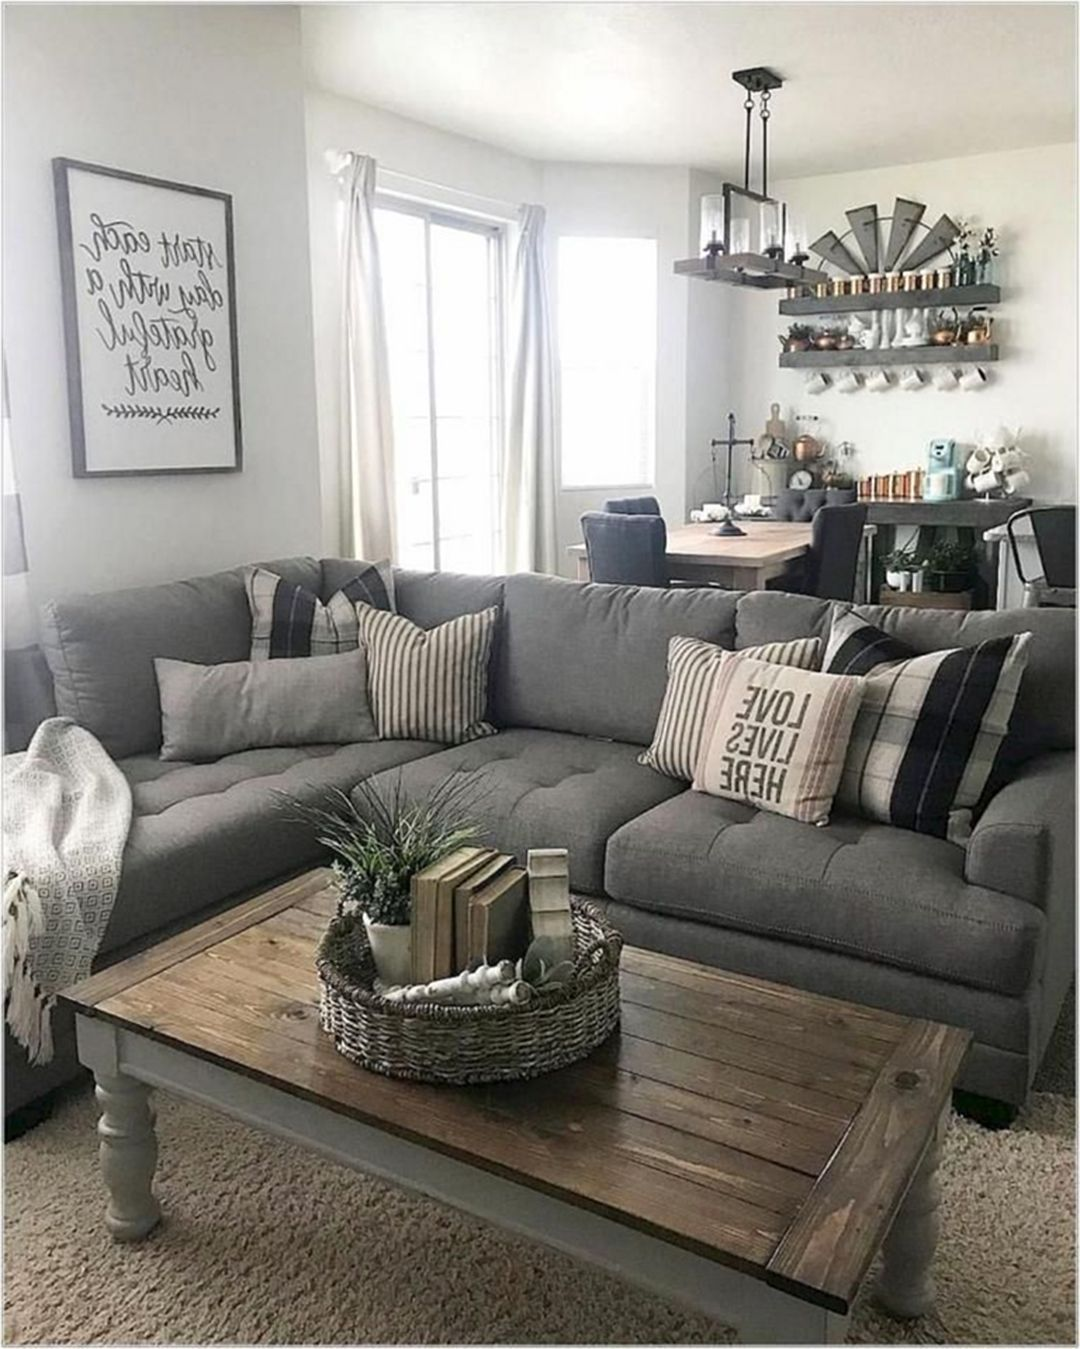 Wonderful Farmhouse Living Room Design In 2020 Farmhouse Decor Living Room Country Living Room Modern Farmhouse Living Room